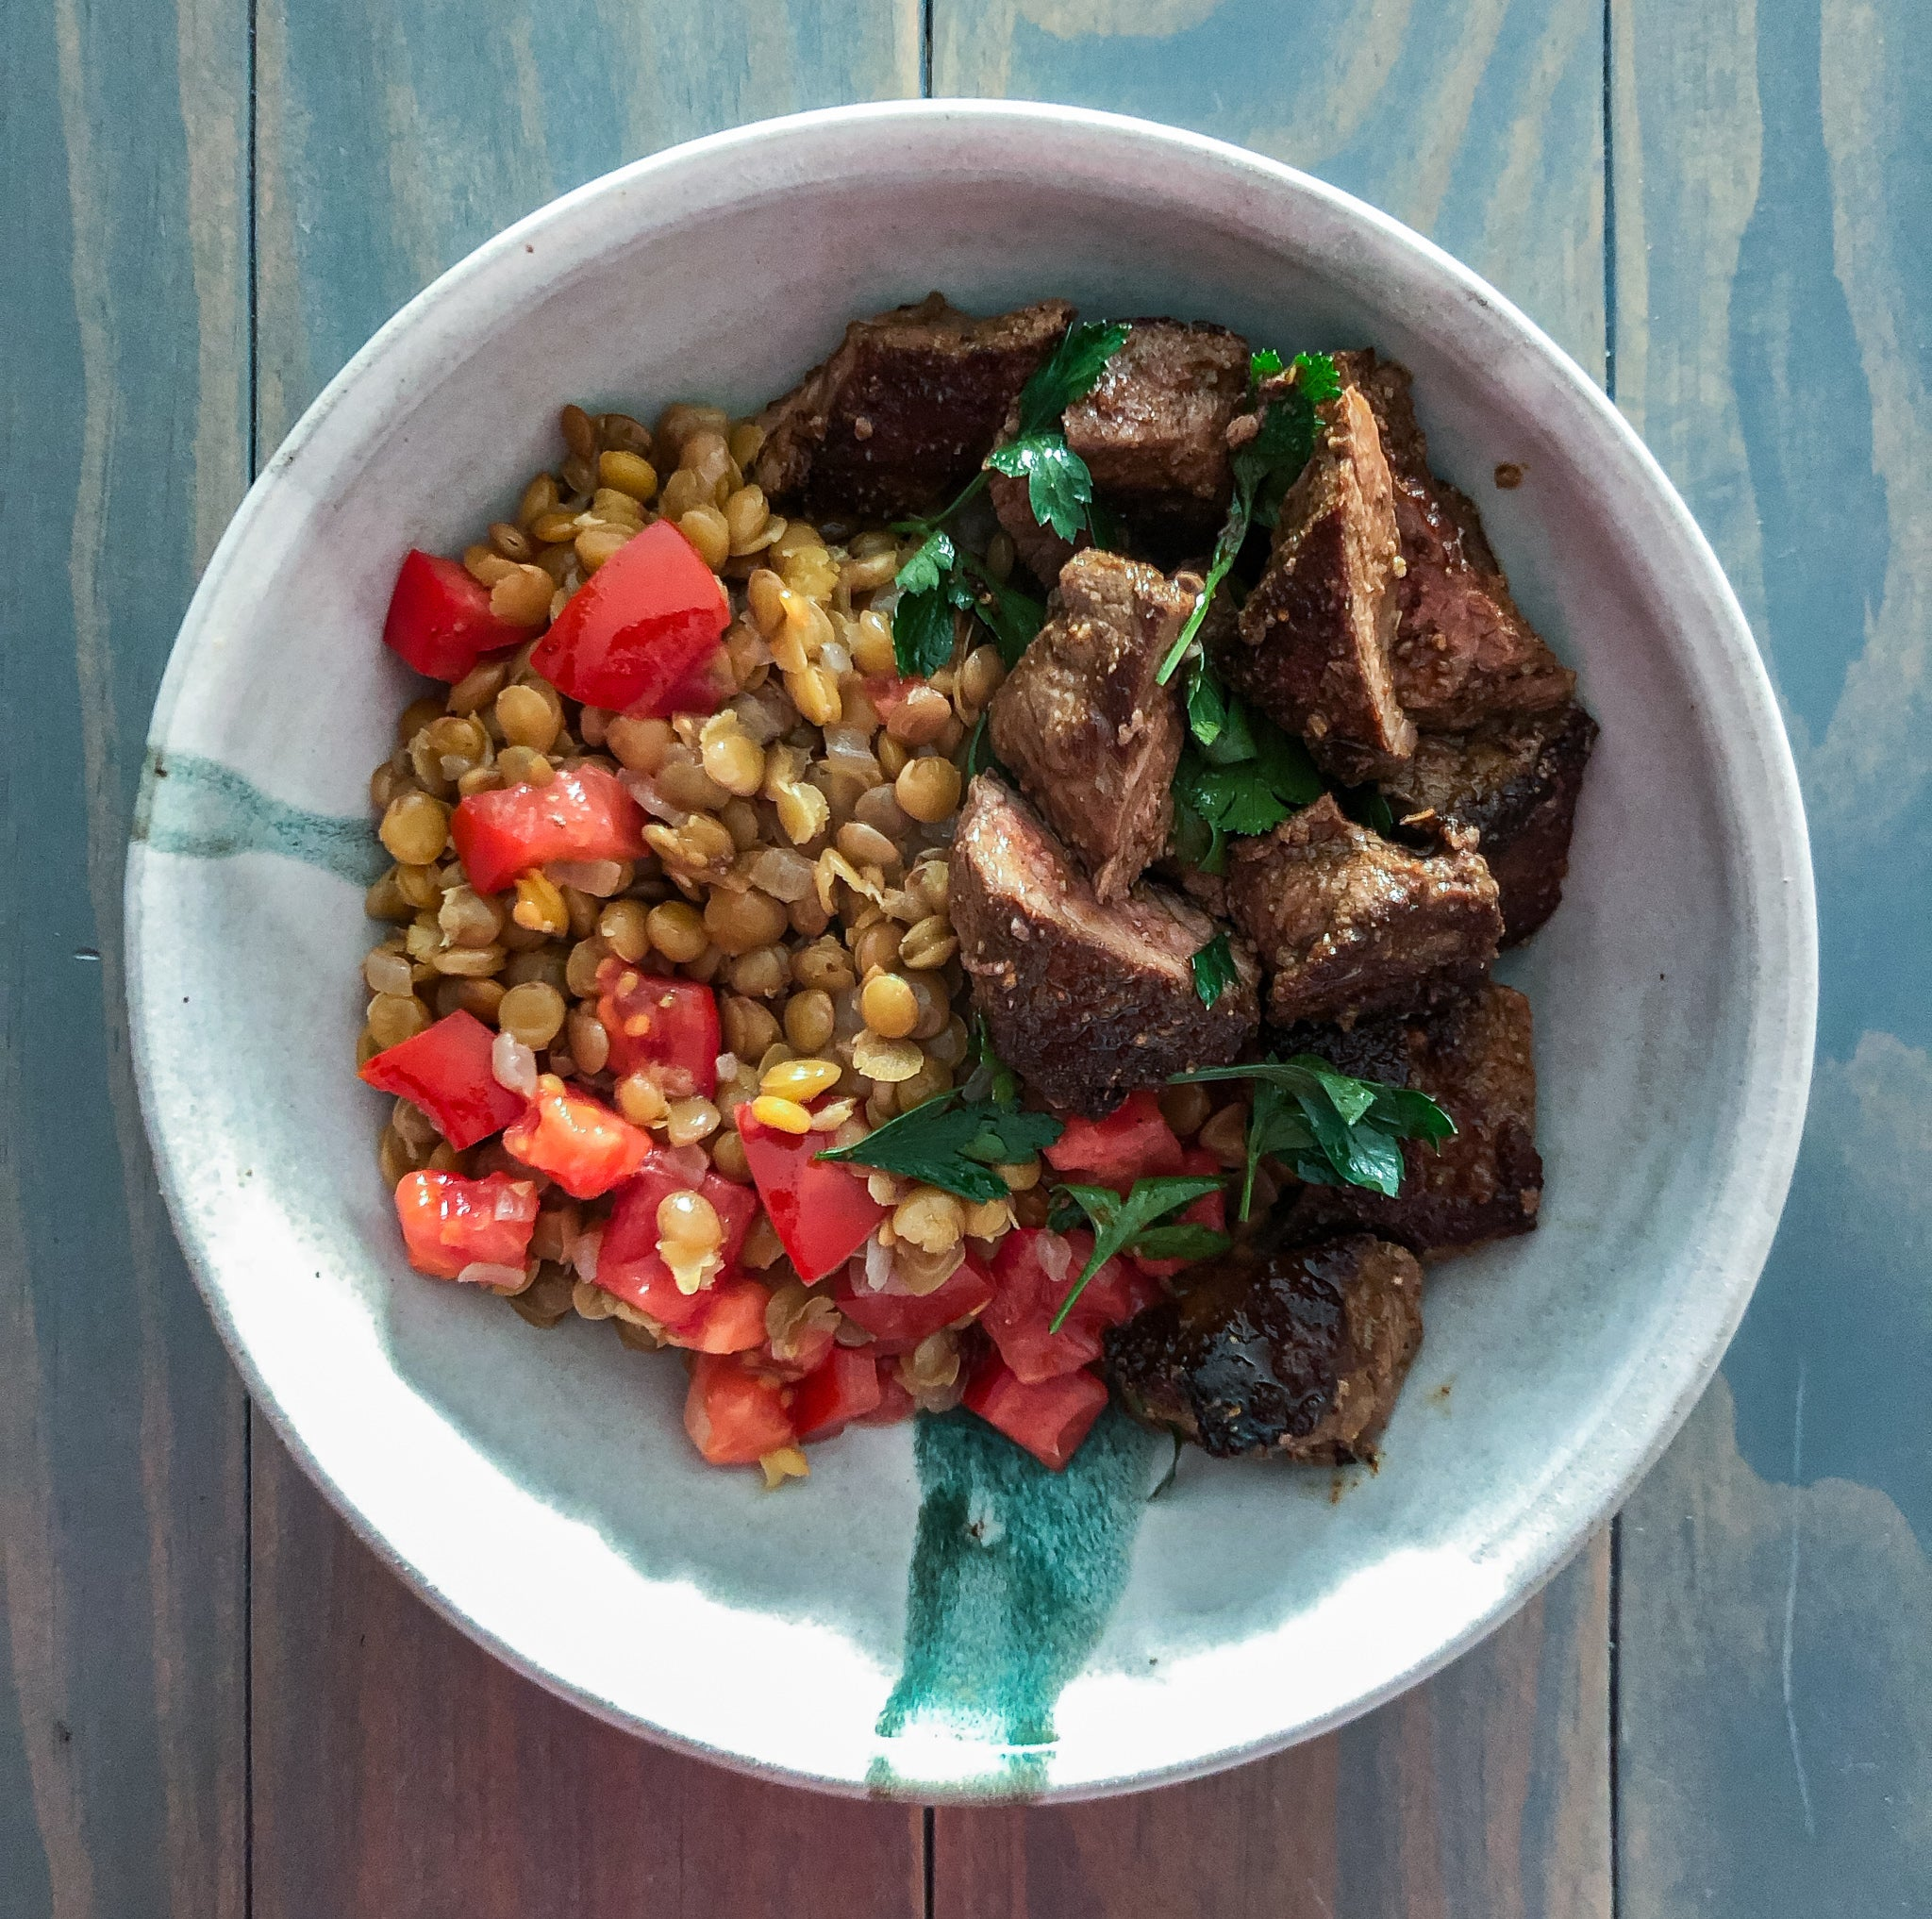 Spiced Beef & Lentils